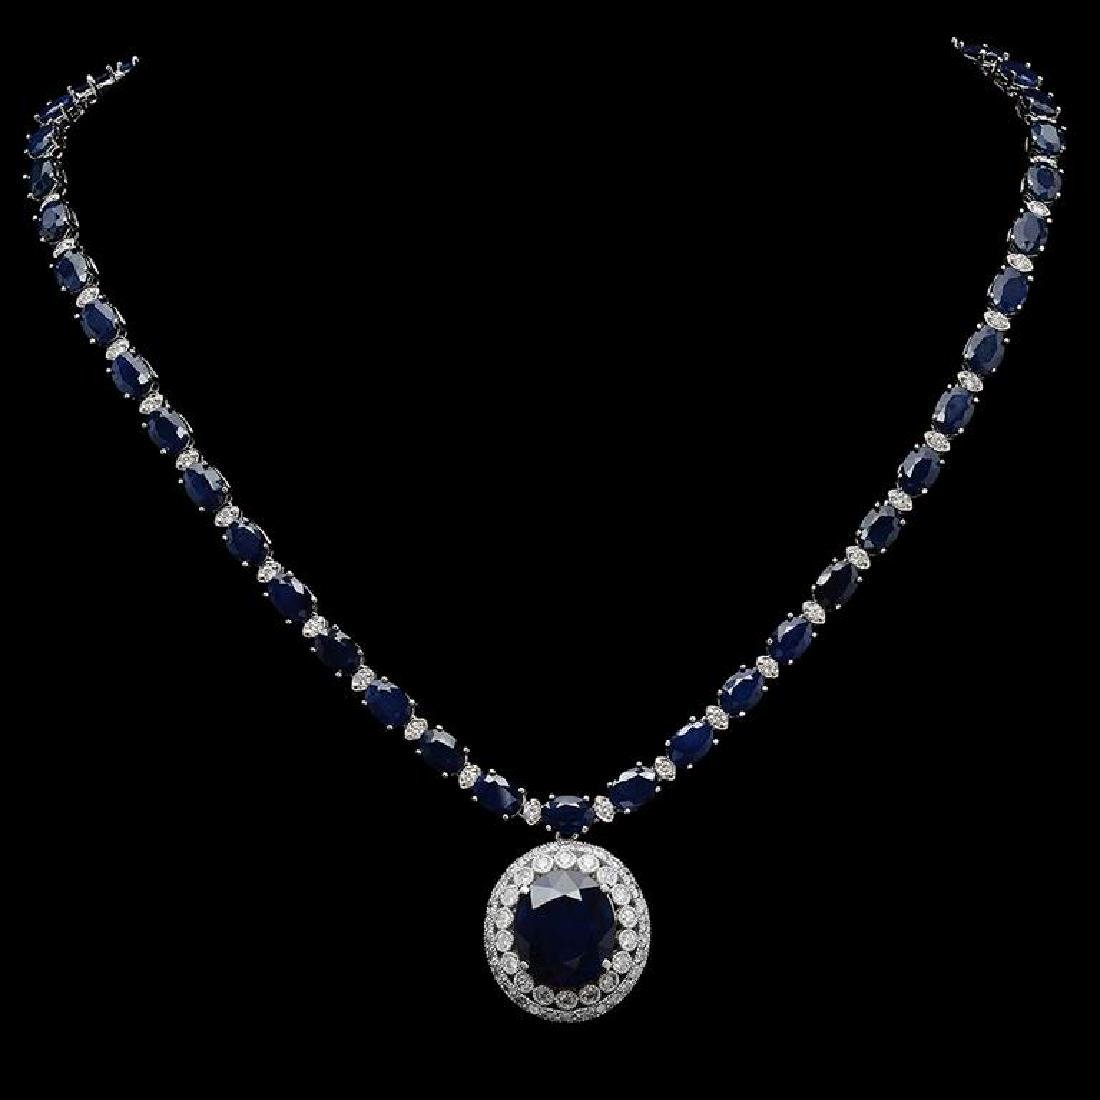 14K Gold 50.77 ct Sapphire & 3.27 ct Diamond Necklace